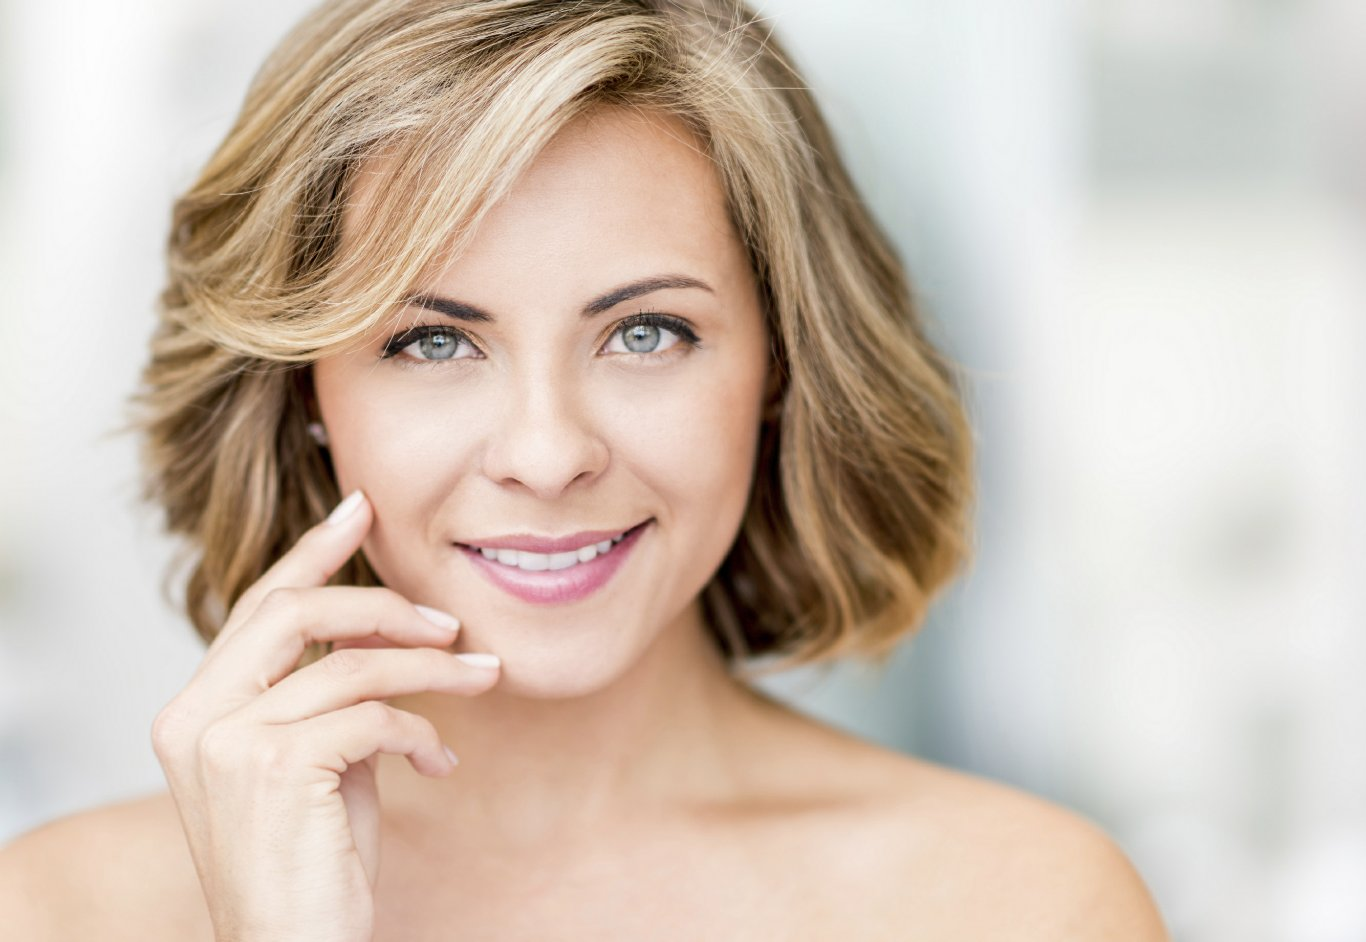 To learn if facelift surgery can help you reach your goals, call Greenwood plastic surgeon Dr. Ted Vaughn at 864-223-0505 and schedule a consultation today